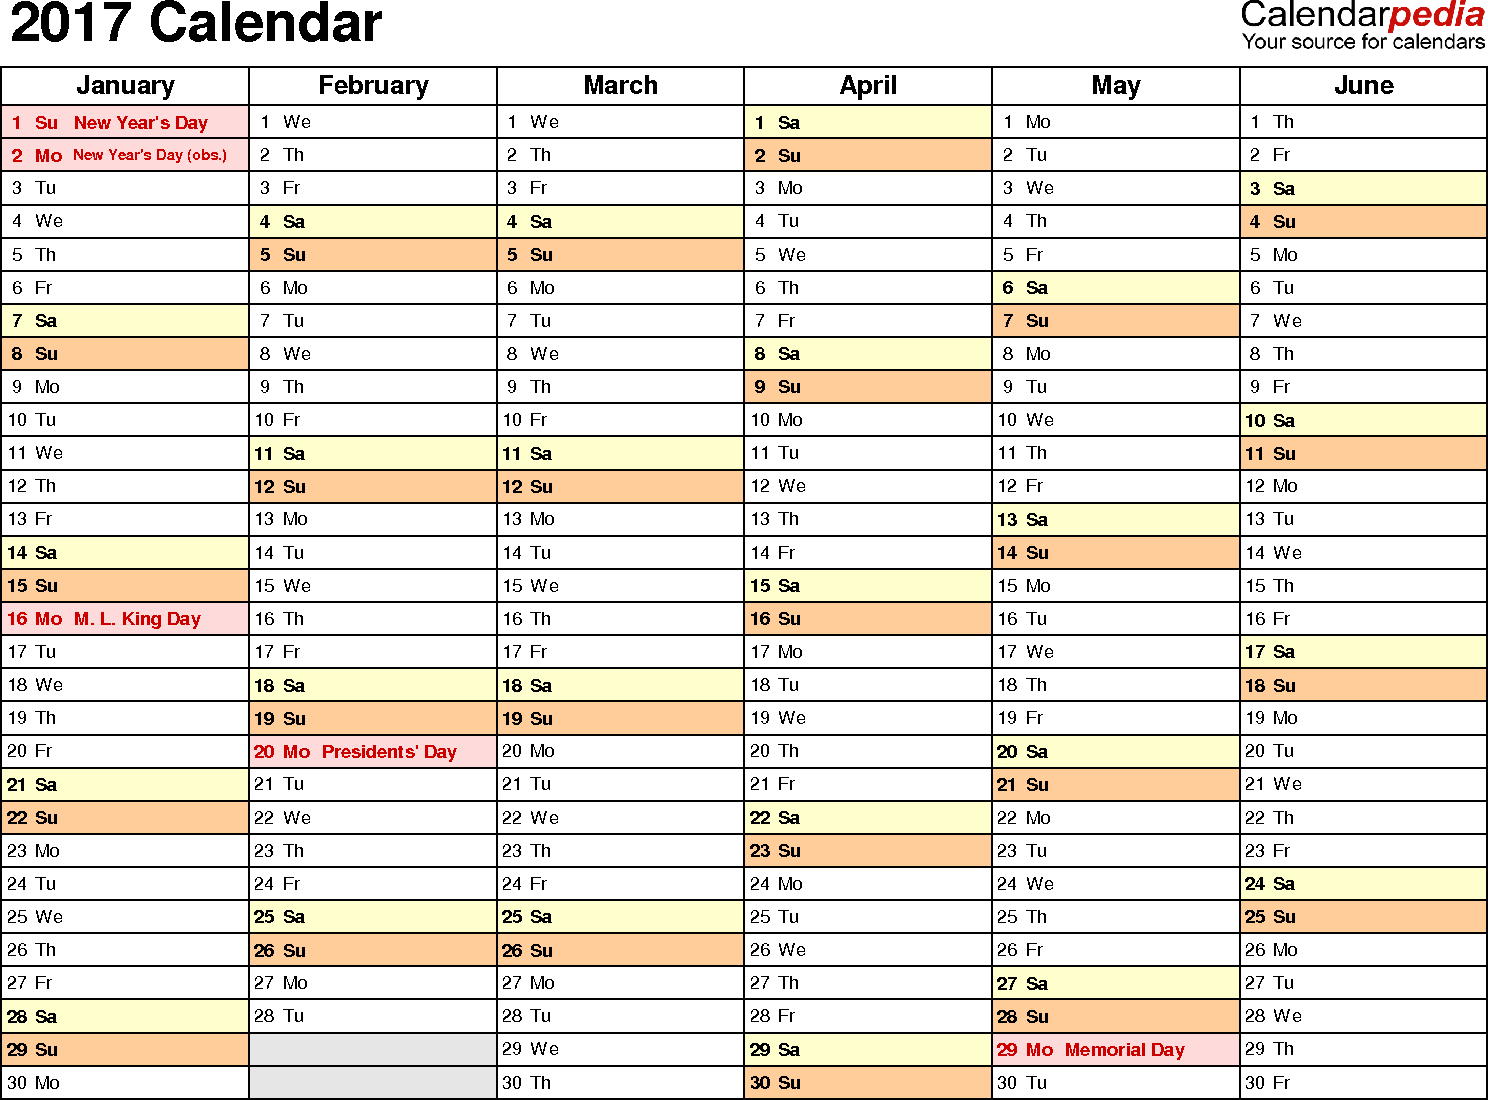 Ediblewildsus  Terrific  Calendar  Download  Free Printable Excel Templates Xls With Gorgeous Template   Calendar For Excel Months Horizontally  Pages Landscape Orientation With Breathtaking Version Control Excel Also Evolution Excel Garbage Disposal In Addition Excel Formula To Value And Eliminate Duplicate Rows In Excel As Well As Excel Add Ins Data Analysis Additionally Excel Driving School Denver From Calendarpediacom With Ediblewildsus  Gorgeous  Calendar  Download  Free Printable Excel Templates Xls With Breathtaking Template   Calendar For Excel Months Horizontally  Pages Landscape Orientation And Terrific Version Control Excel Also Evolution Excel Garbage Disposal In Addition Excel Formula To Value From Calendarpediacom